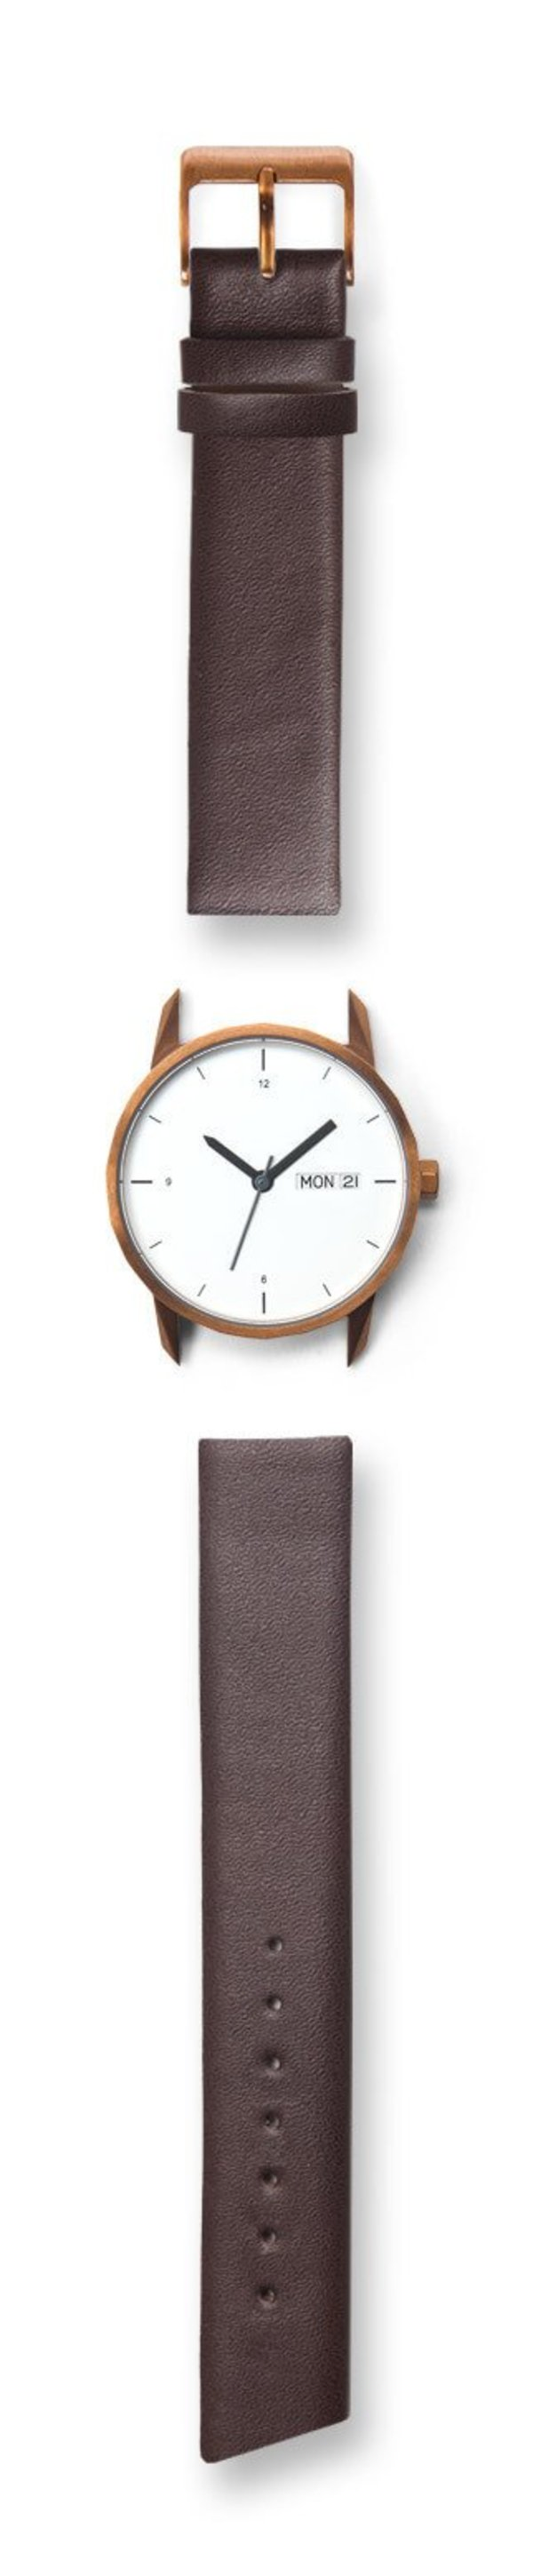 Tinker Watches 34mm Copper Watch Brown Strap